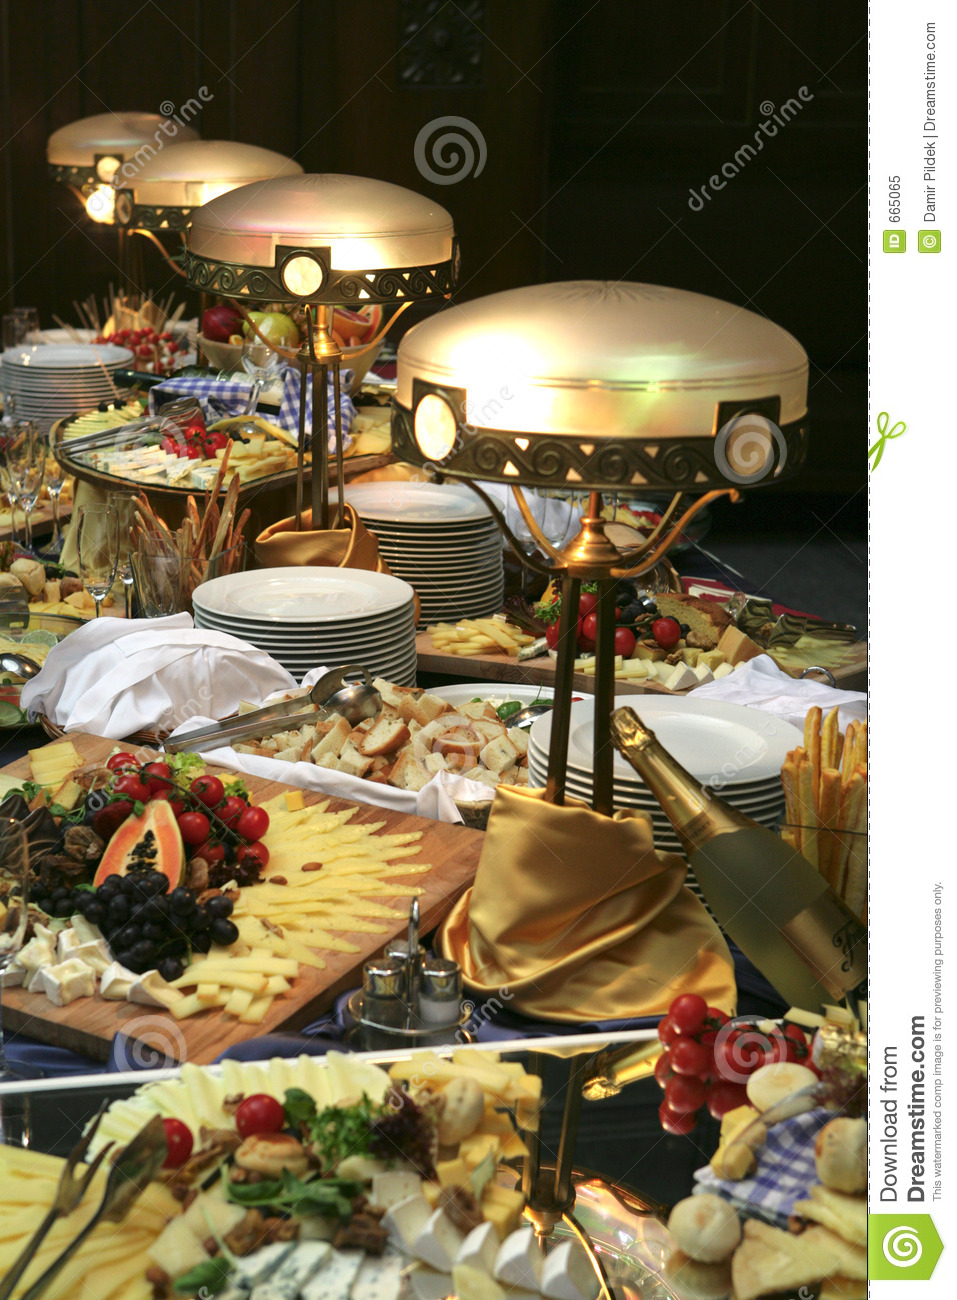 Restaurant Buffet Stock Image  Image Of Hotel  Appetite